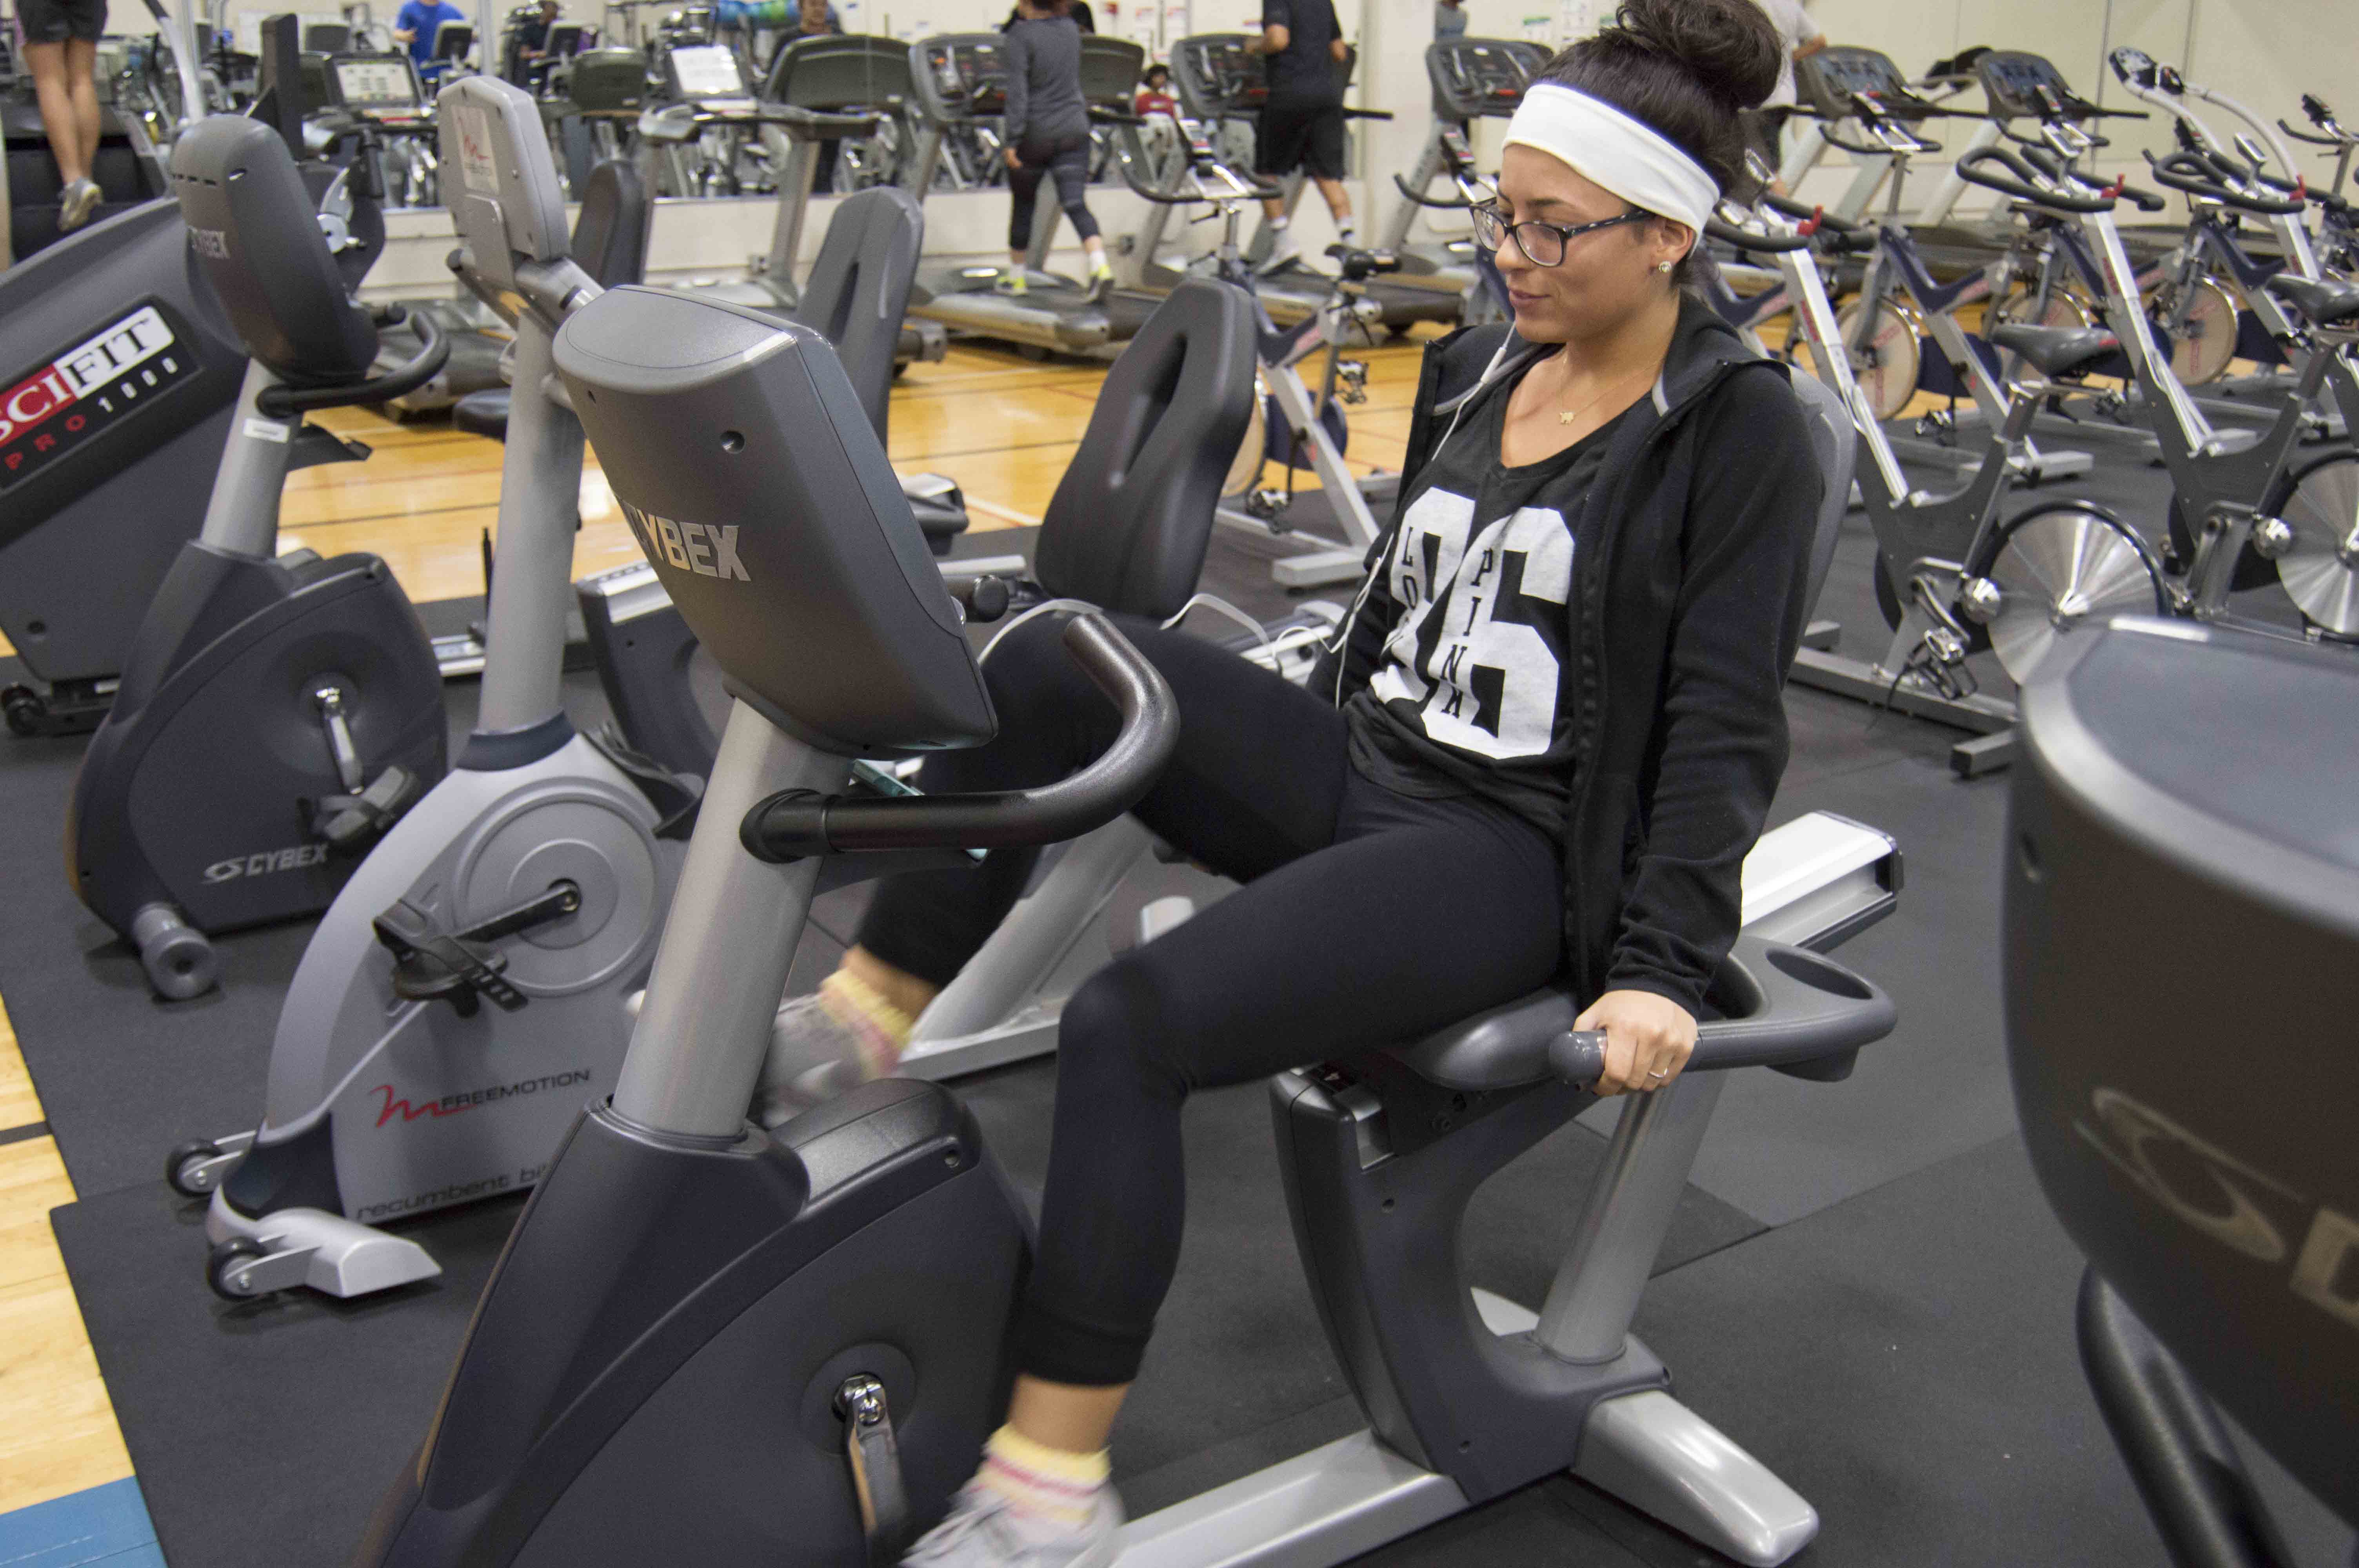 TCC gyms available for all students - The Collegian